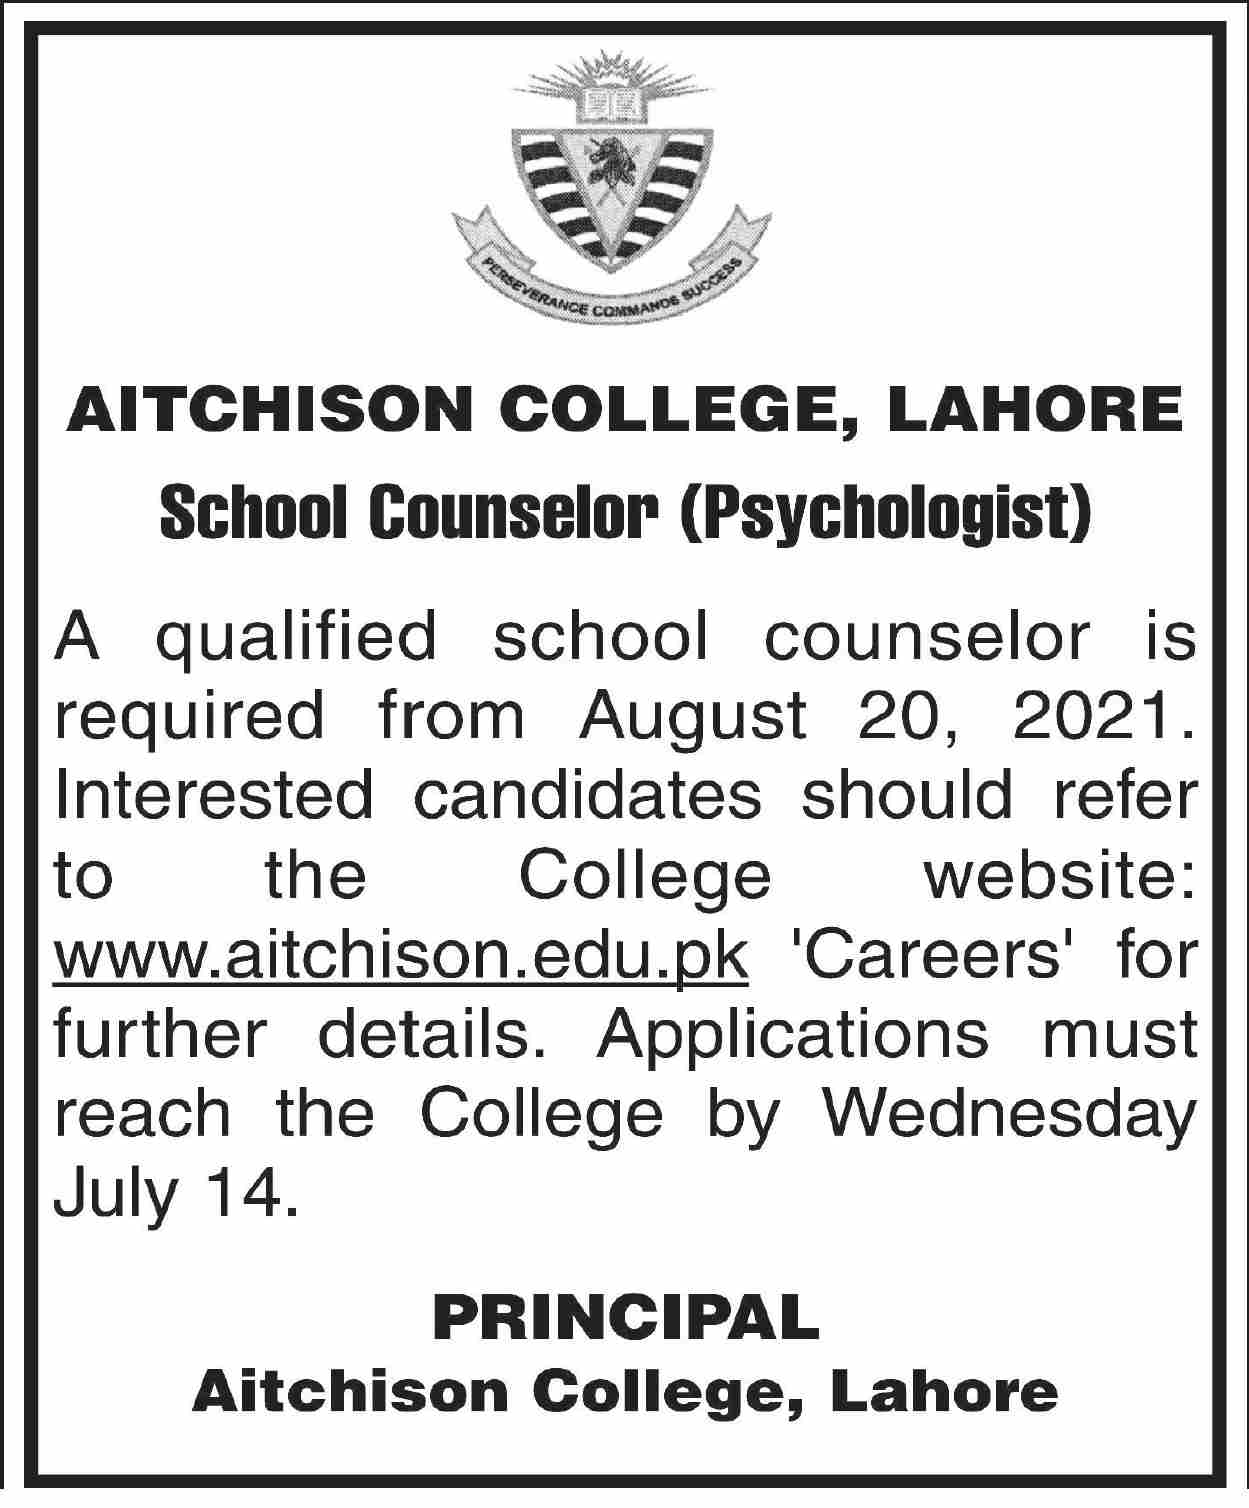 School Counselor Psychologist Jobs in Aitchison College